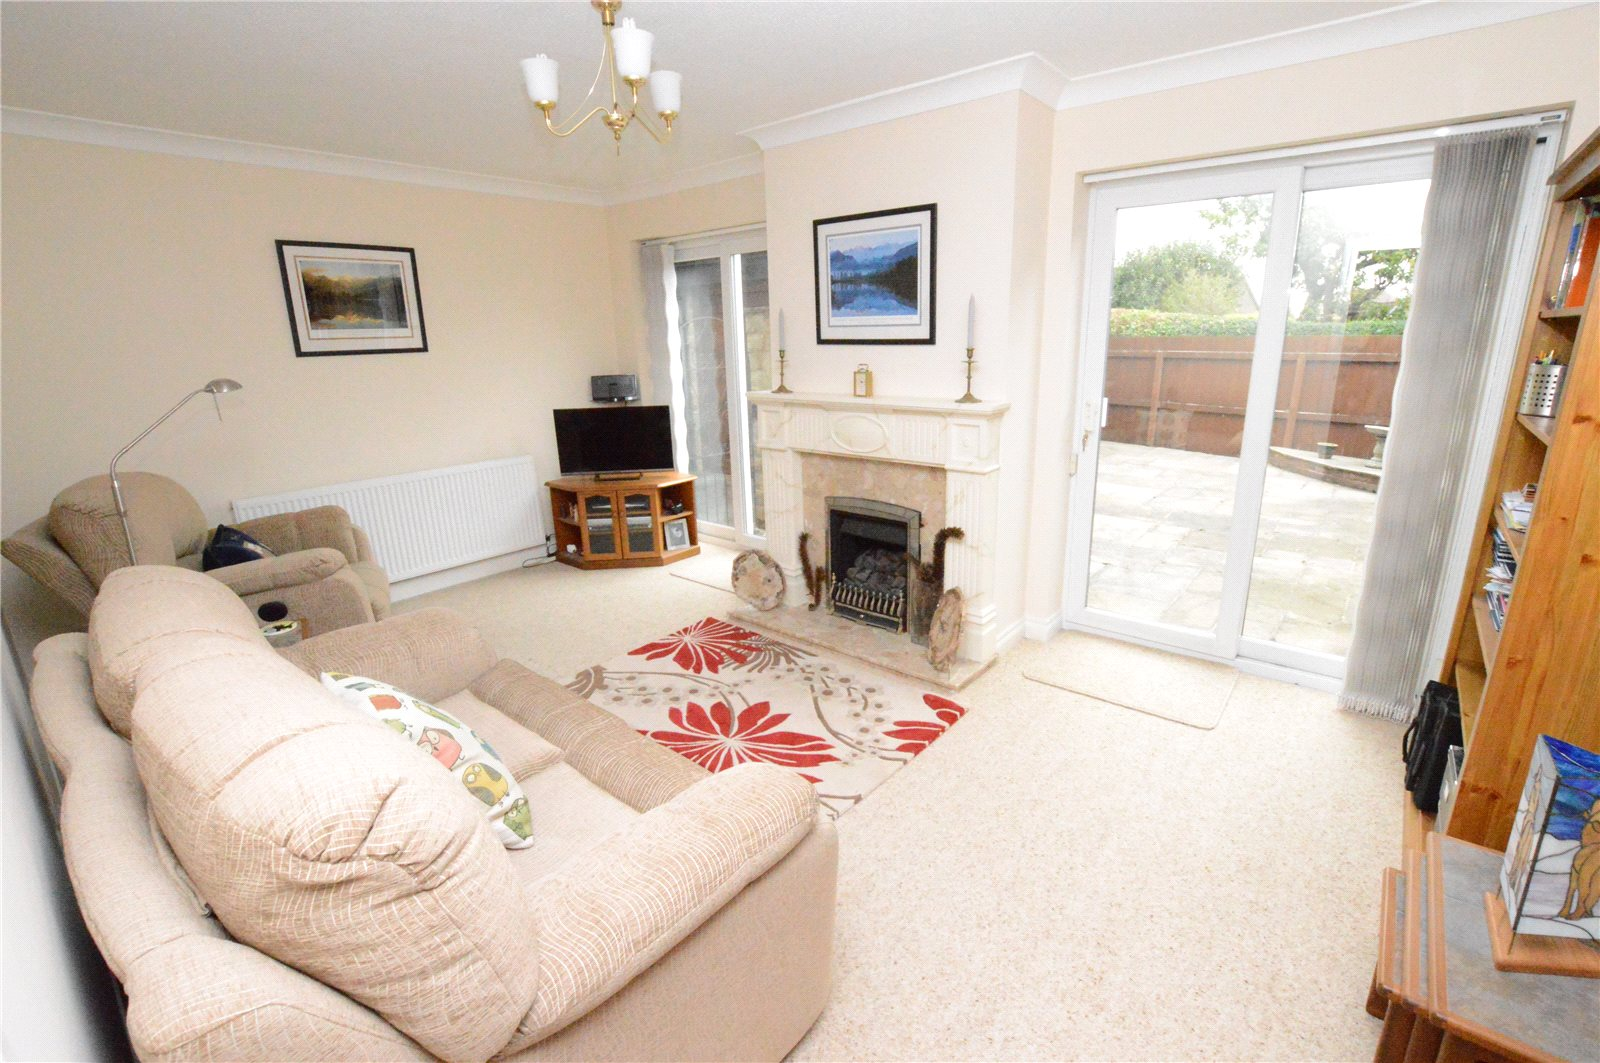 Property for sale in Crossgates, interior reception room two sofas and patio doors